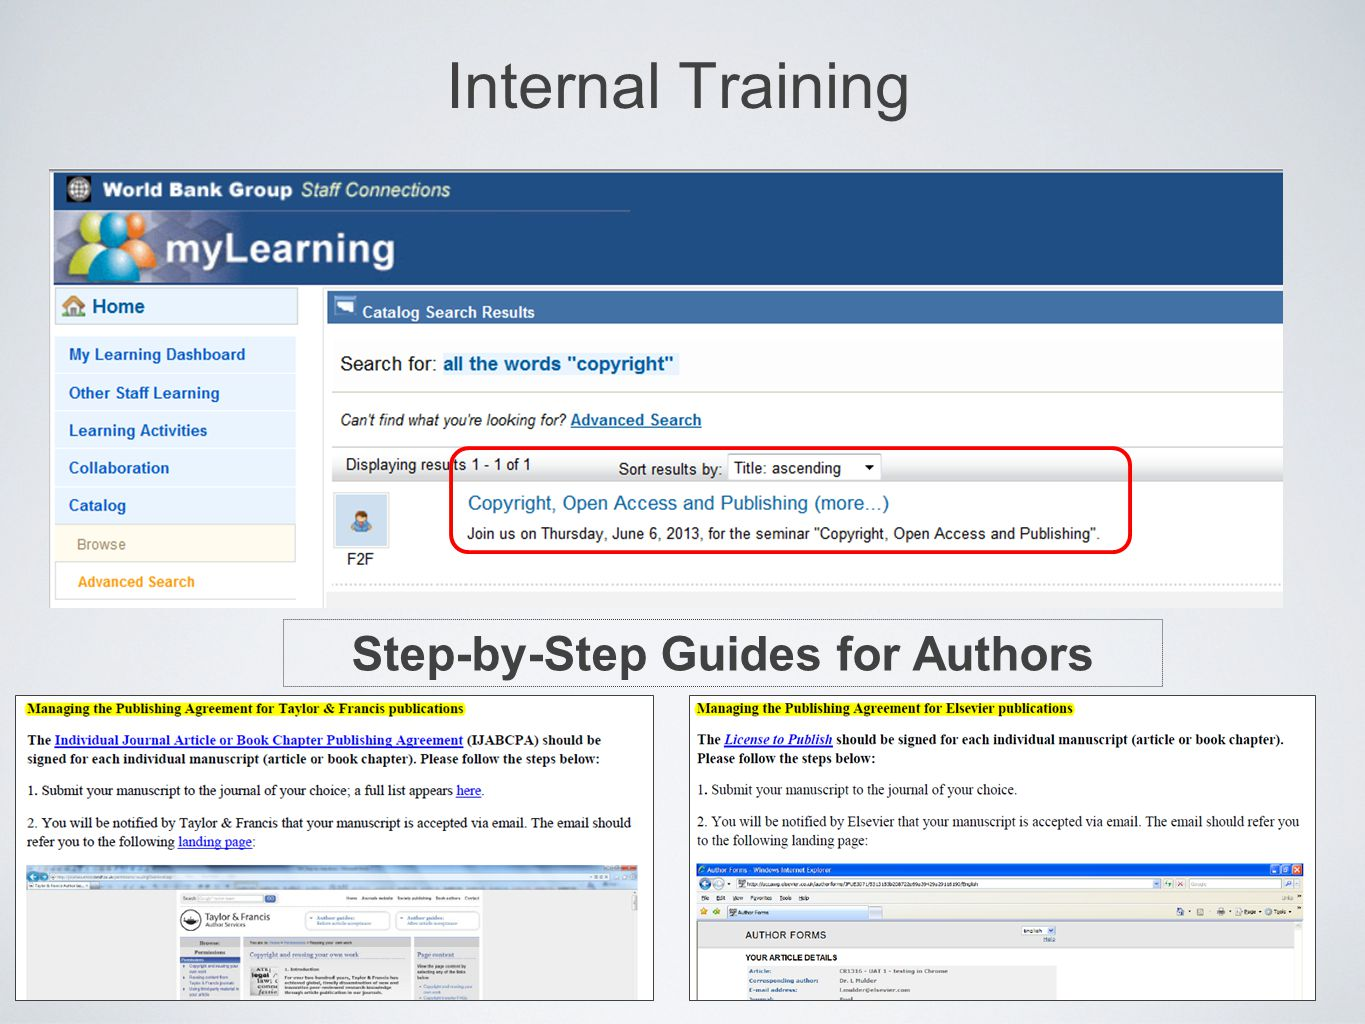 Step-by-Step Guides for Authors